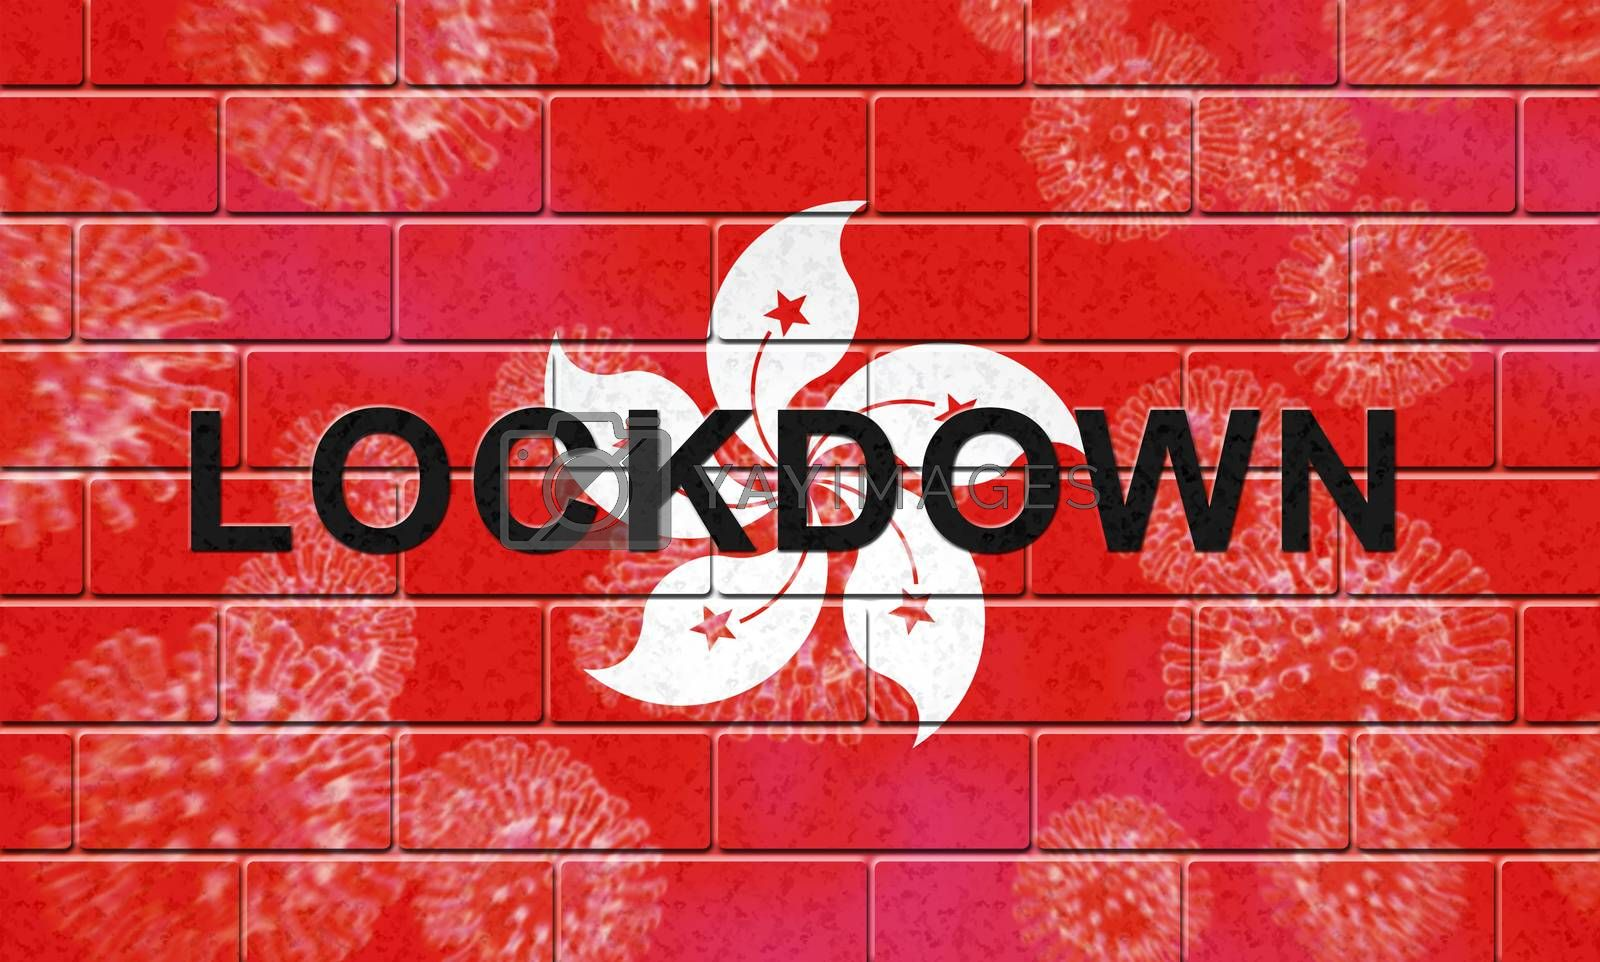 Hong Kong lockdown preventing covid19 spread and outbreak. Covid 19 HK precaution to lock down virus infection - 3d Illustration